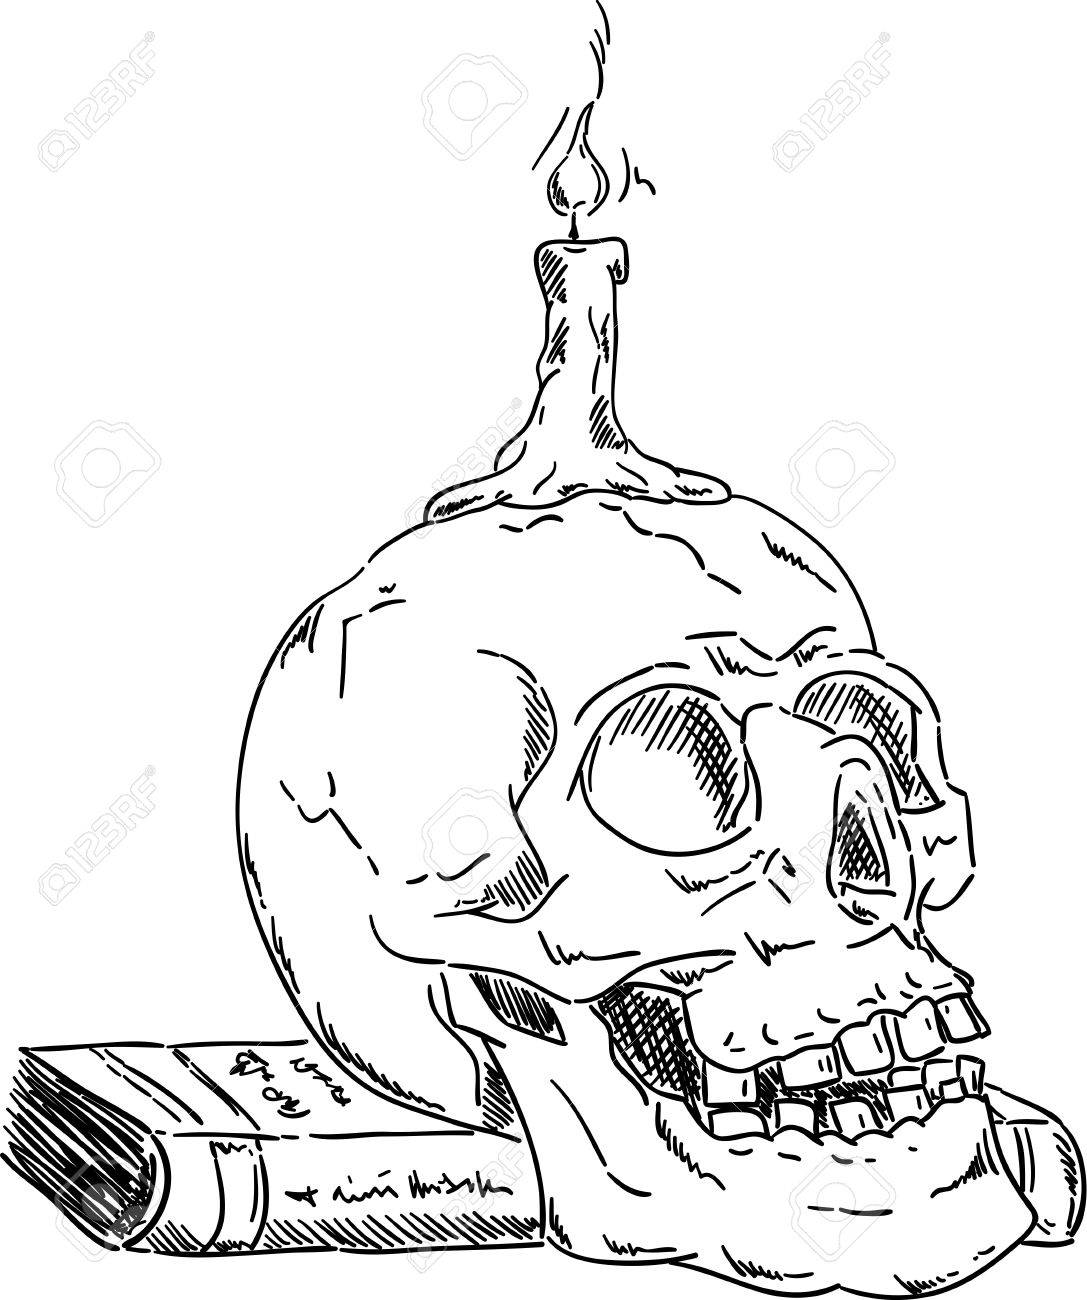 1087x1300 Skull On Book With Candle ,isolated On Background , Hand Draw